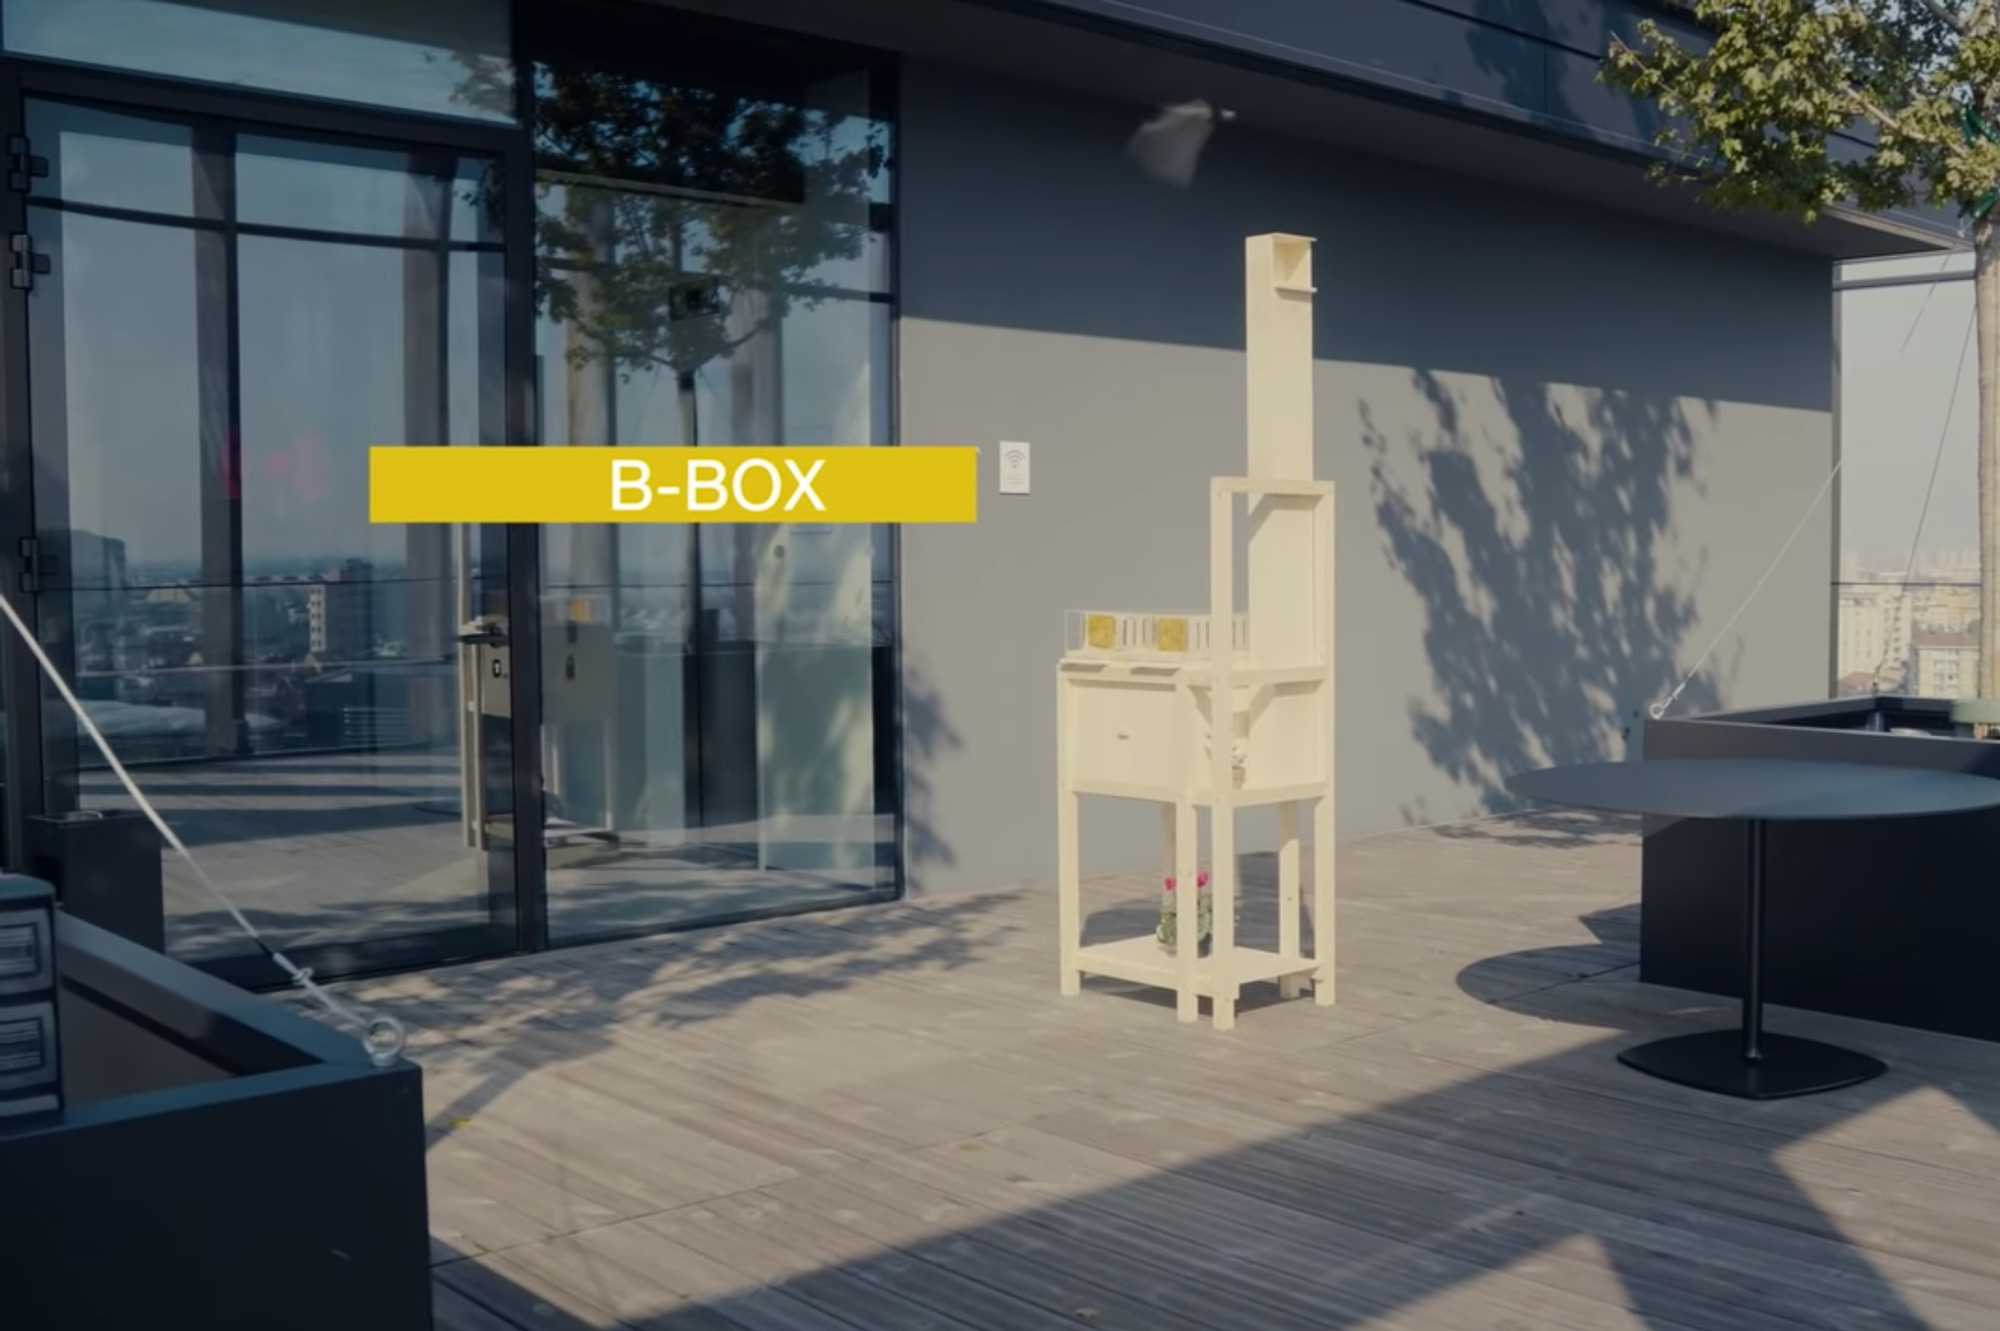 Beekeeping Made Easy With a New Compact Hive Built for Urban Settings